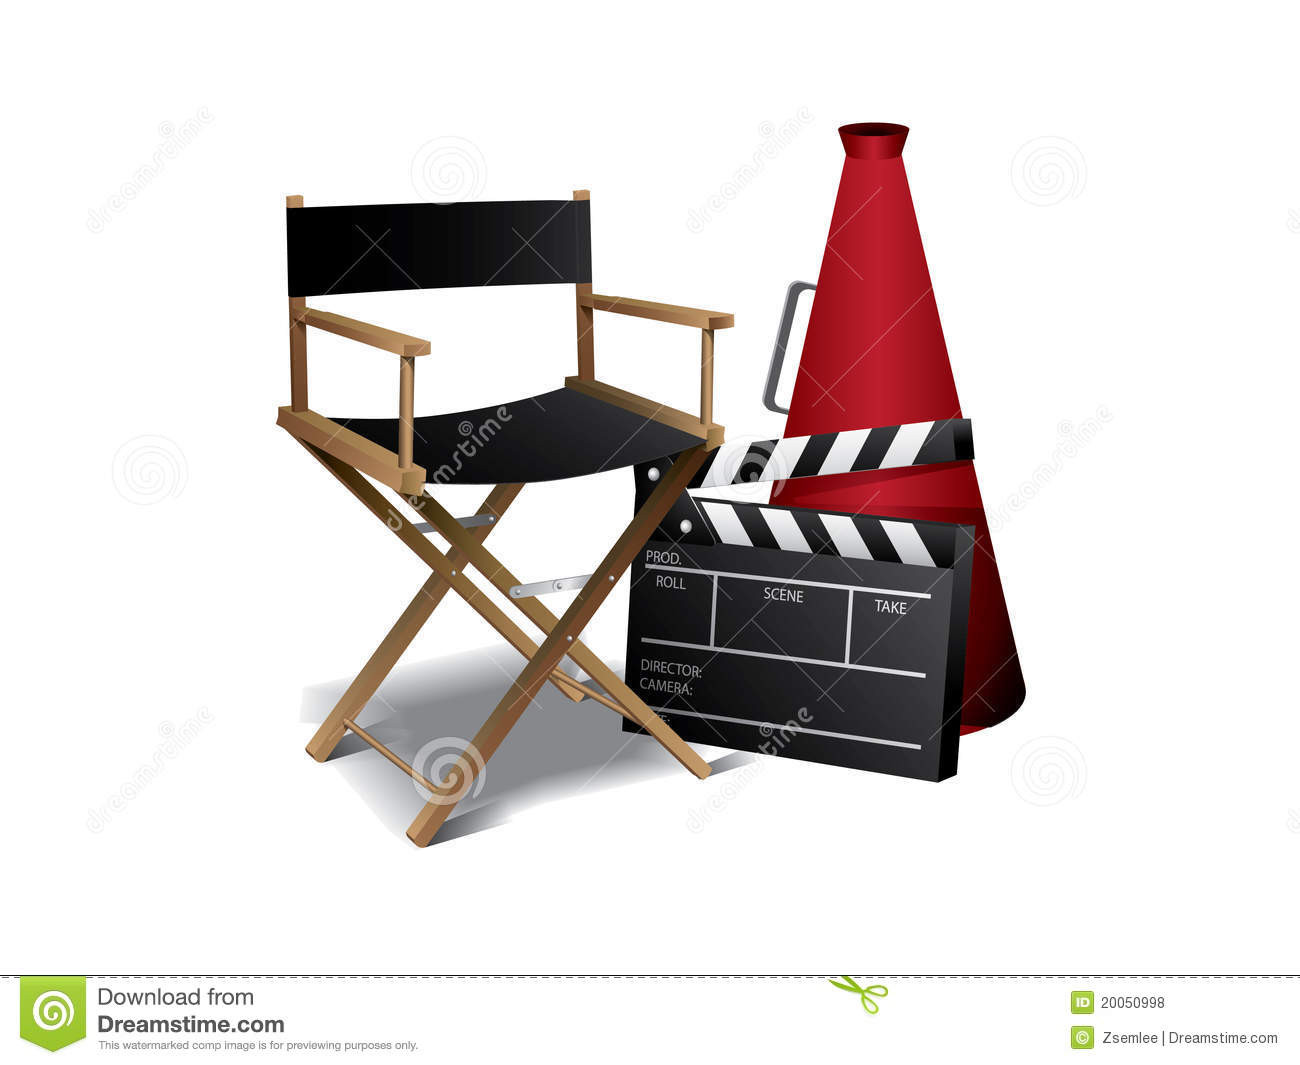 Silla De Director De Cine Gran Movie Director Chair Royalty Free Stock S Image Of Silla De Director De Cine Único Sillas Director De Cine 2017 2018 Mejor Precio Y Ofertas